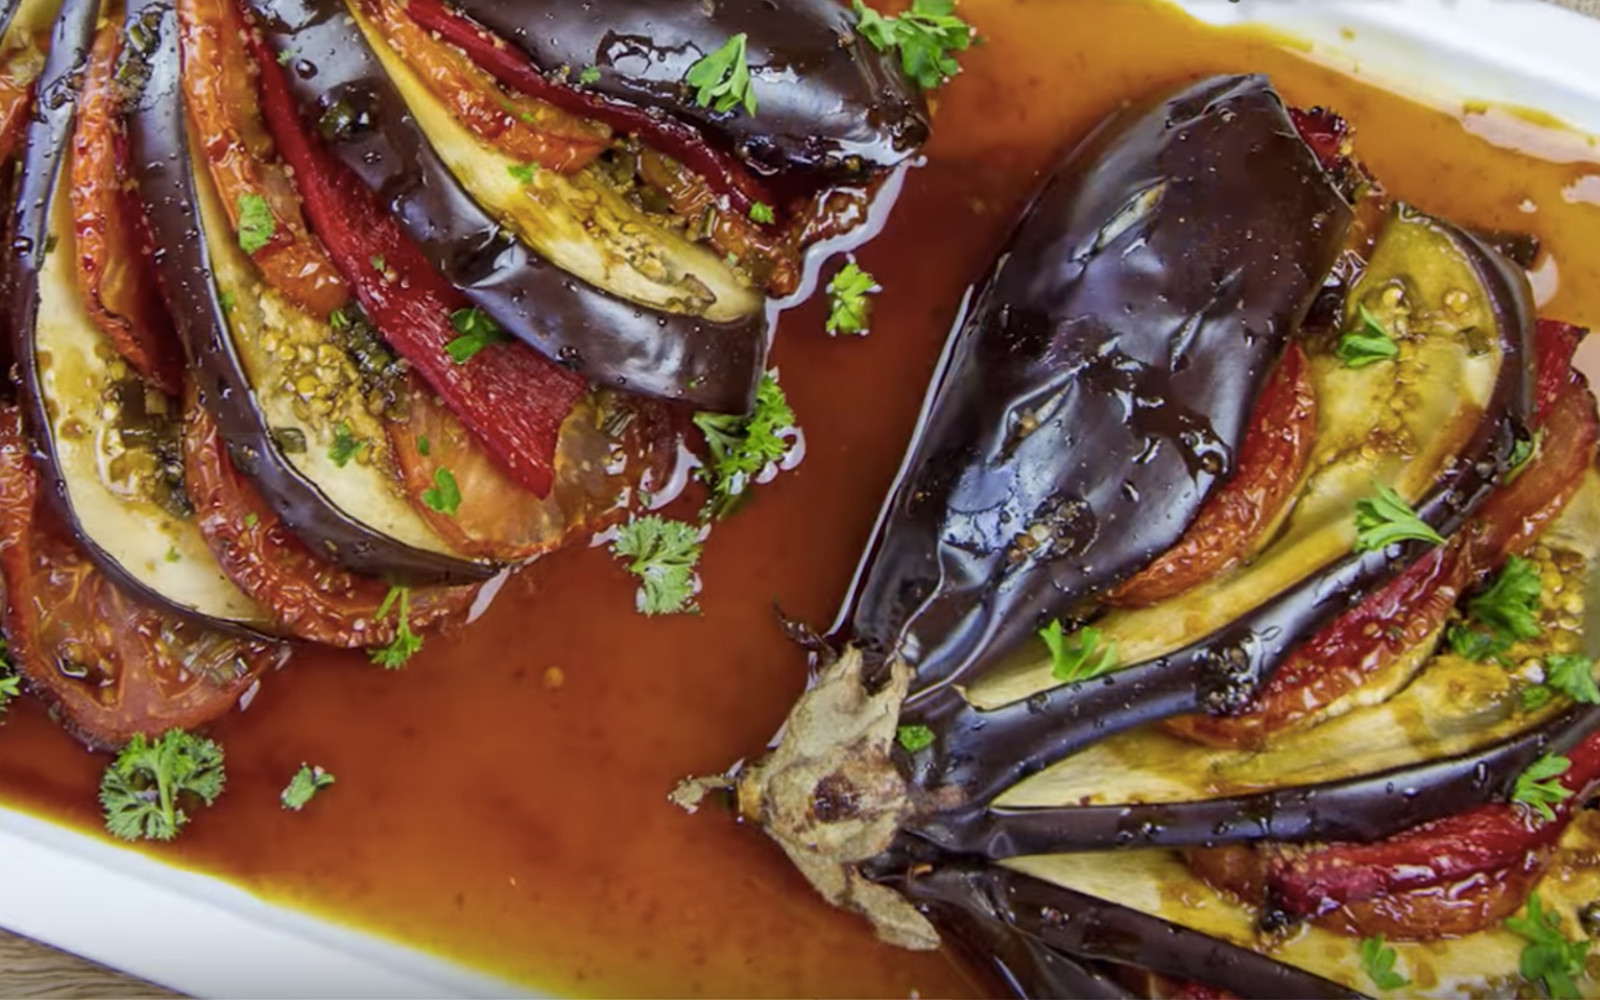 Stuffed eggplant with maple balsamic glaze